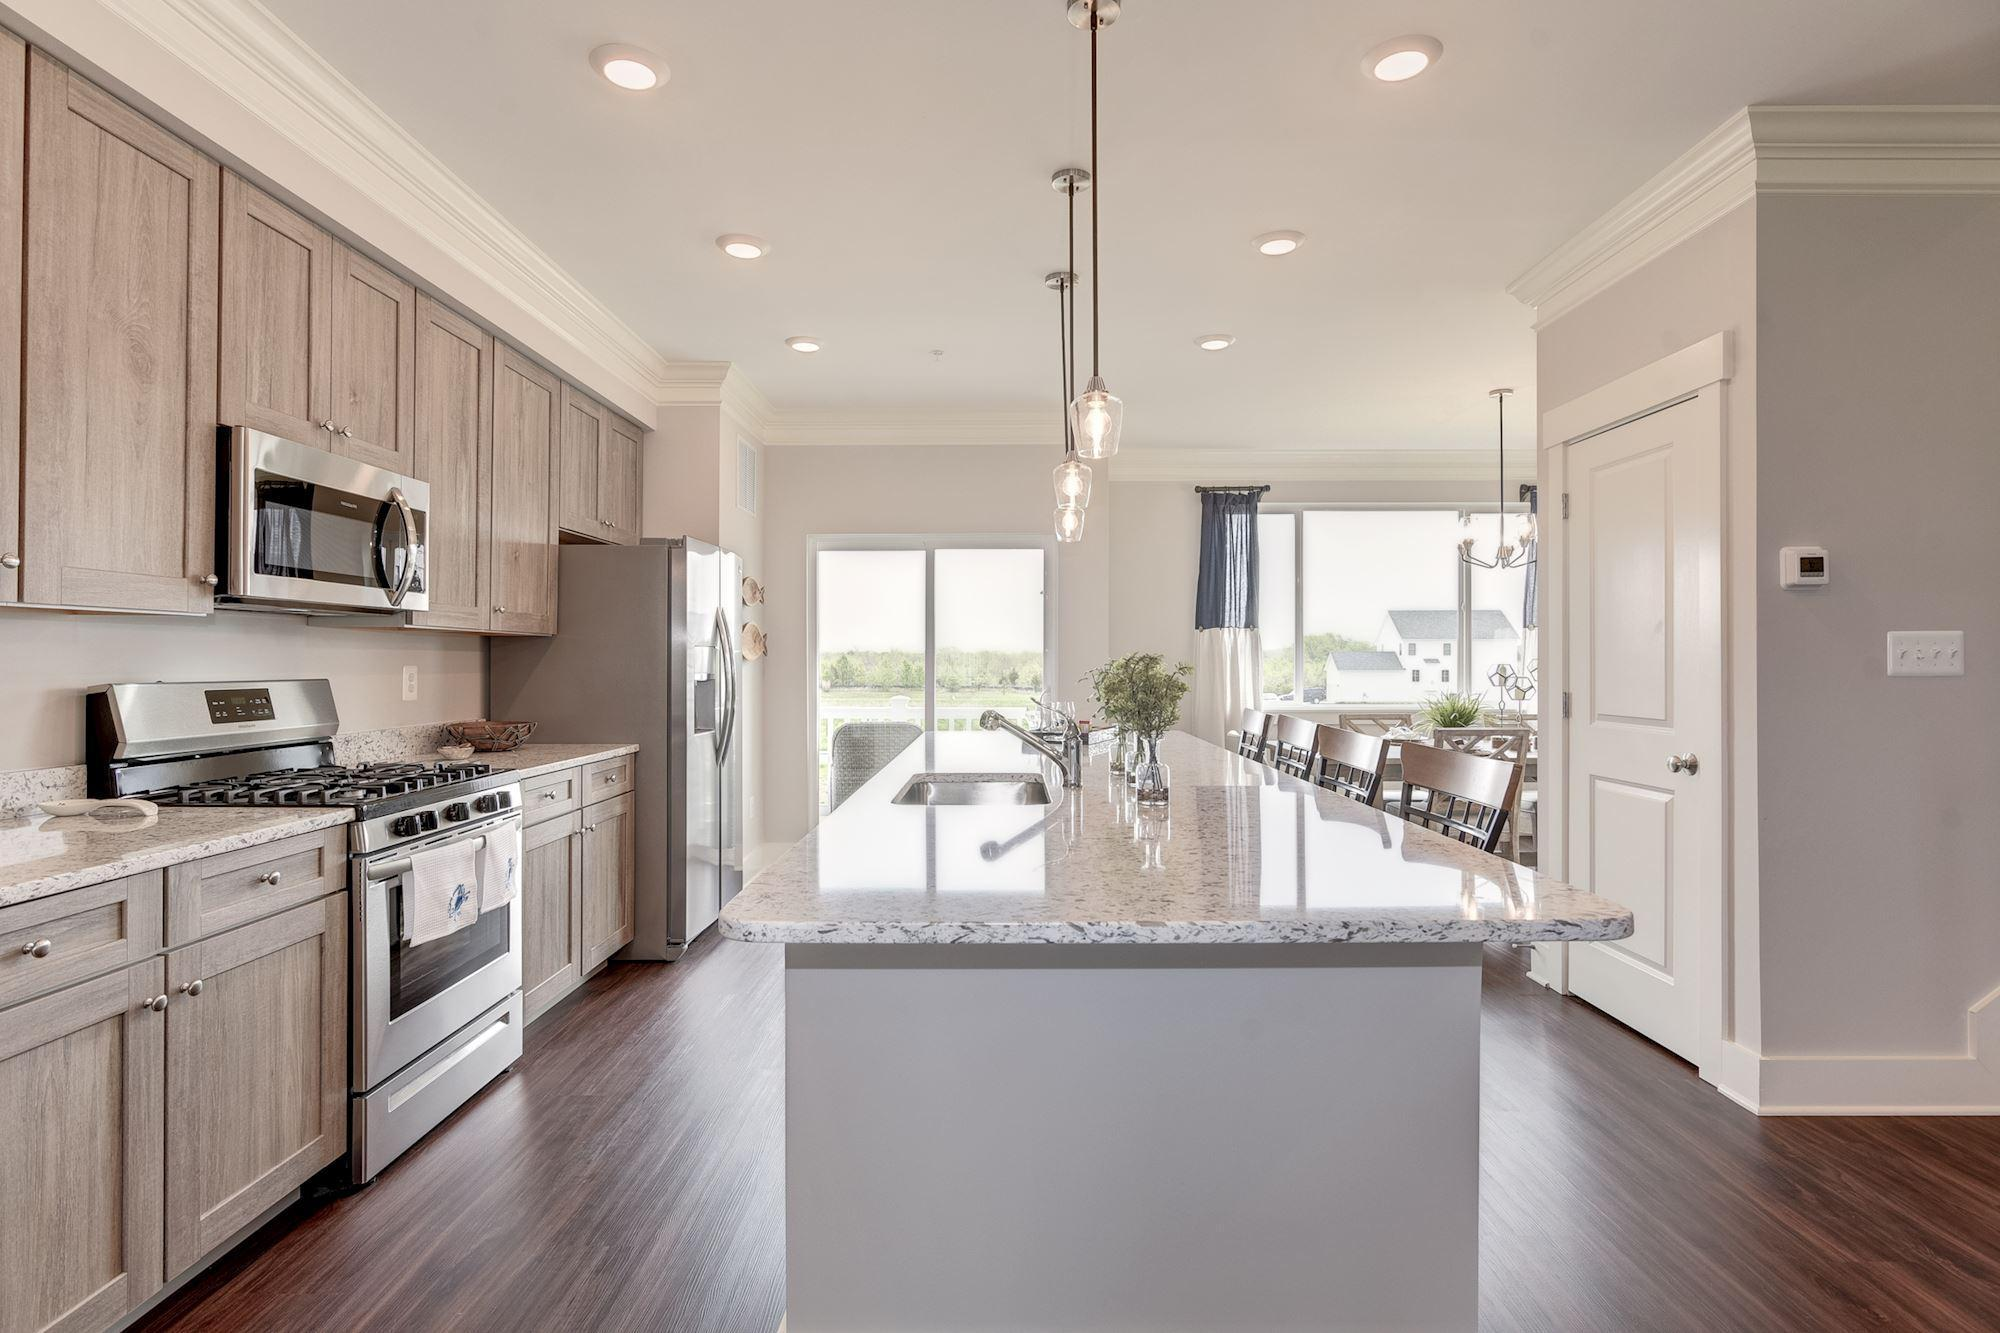 Kitchen featured in the Townhome-Interior Unit By Baldwin Homes Inc. in Eastern Shore, MD